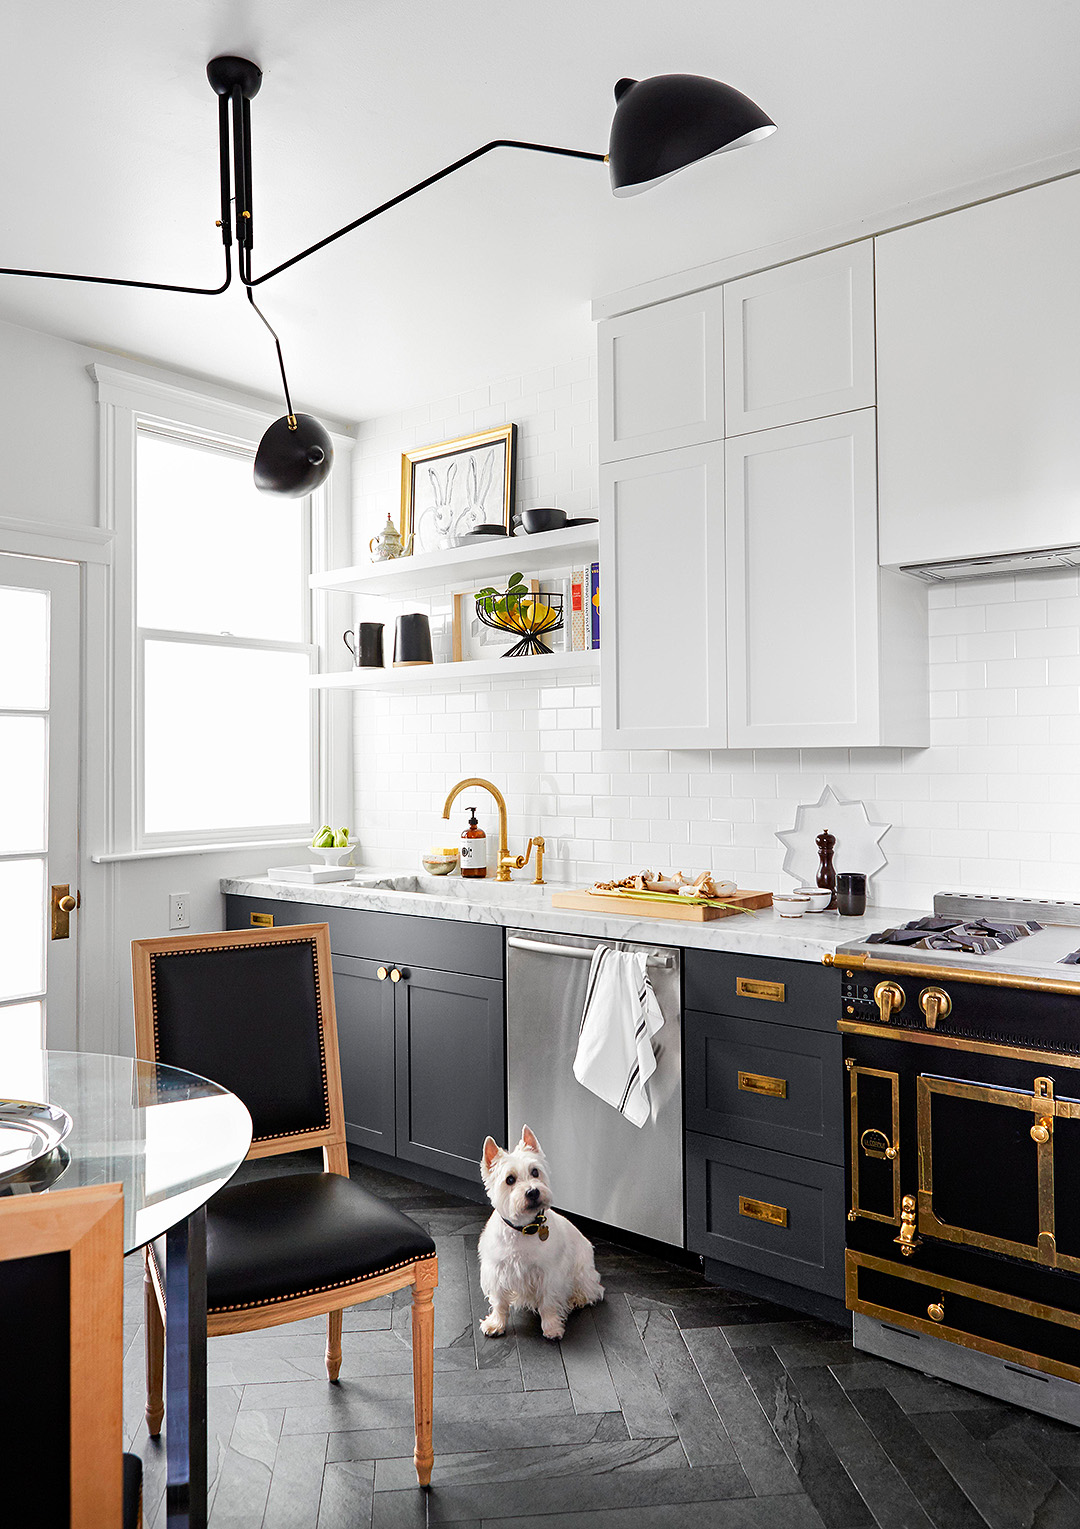 modern kitchen with dark cabinets below and white cabinets above, black and gold oven range